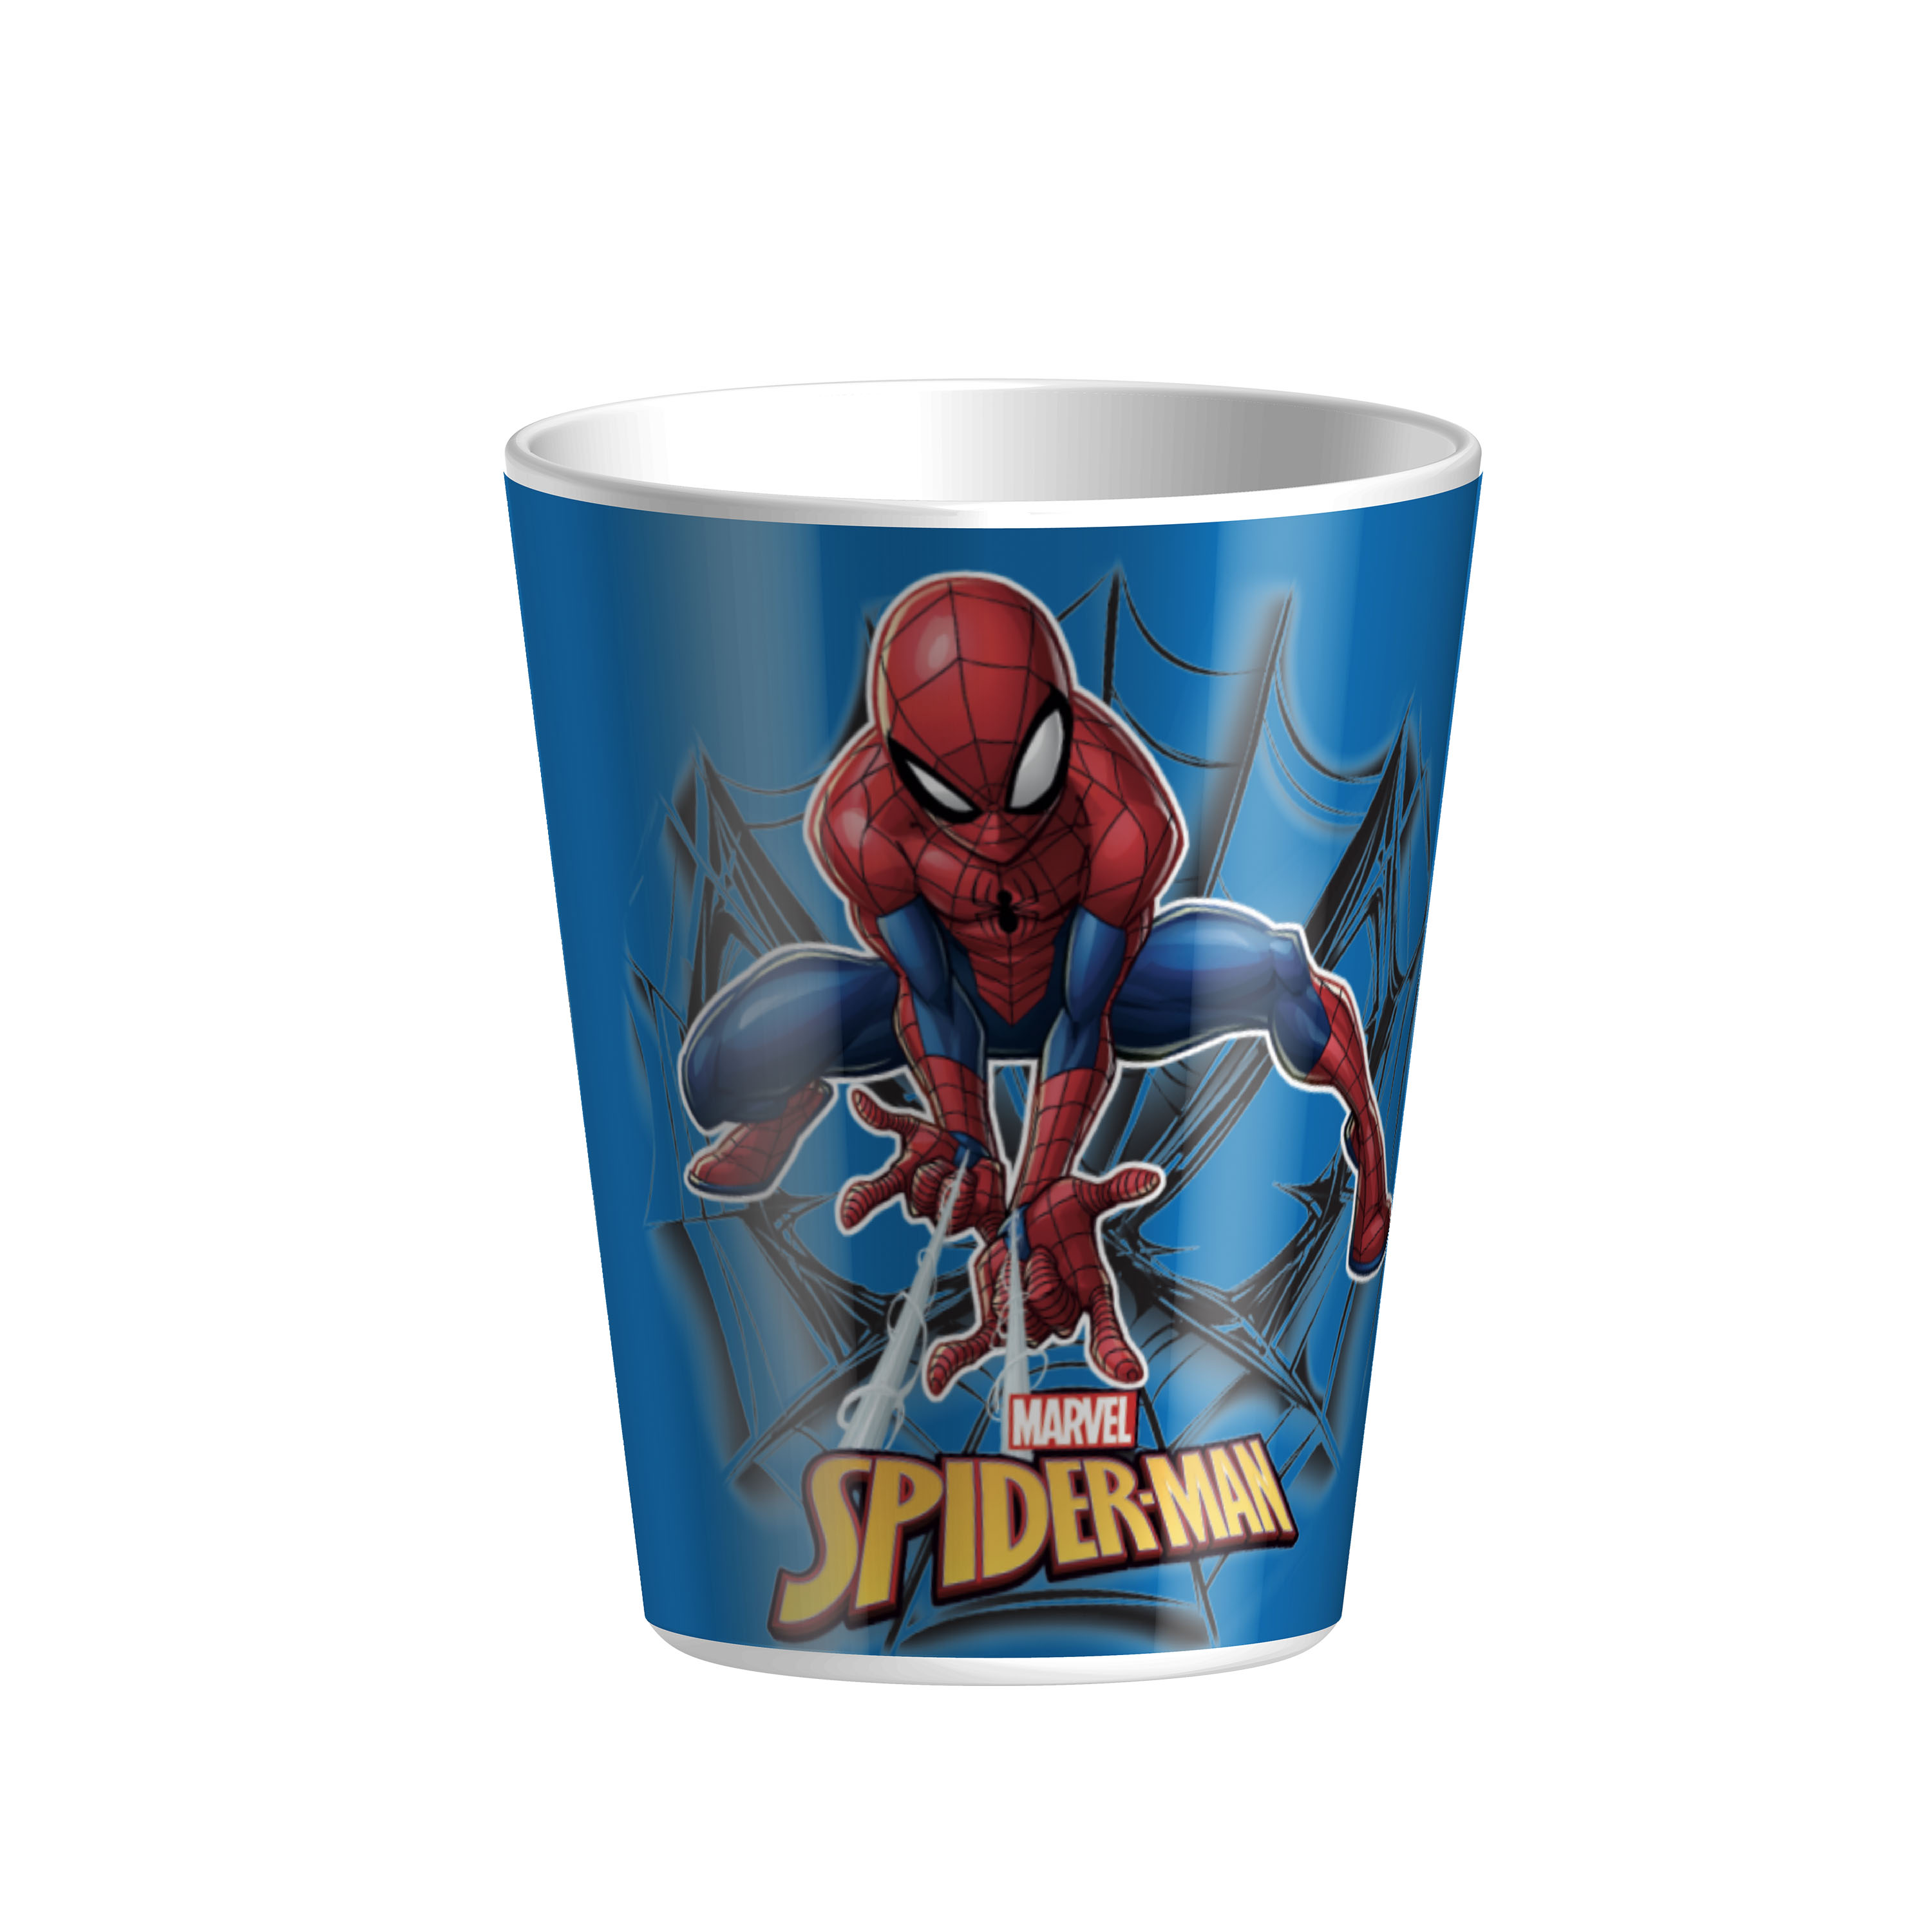 Marvel Kid's Dinnerware Set, Spider-Man, 3-piece set slideshow image 4